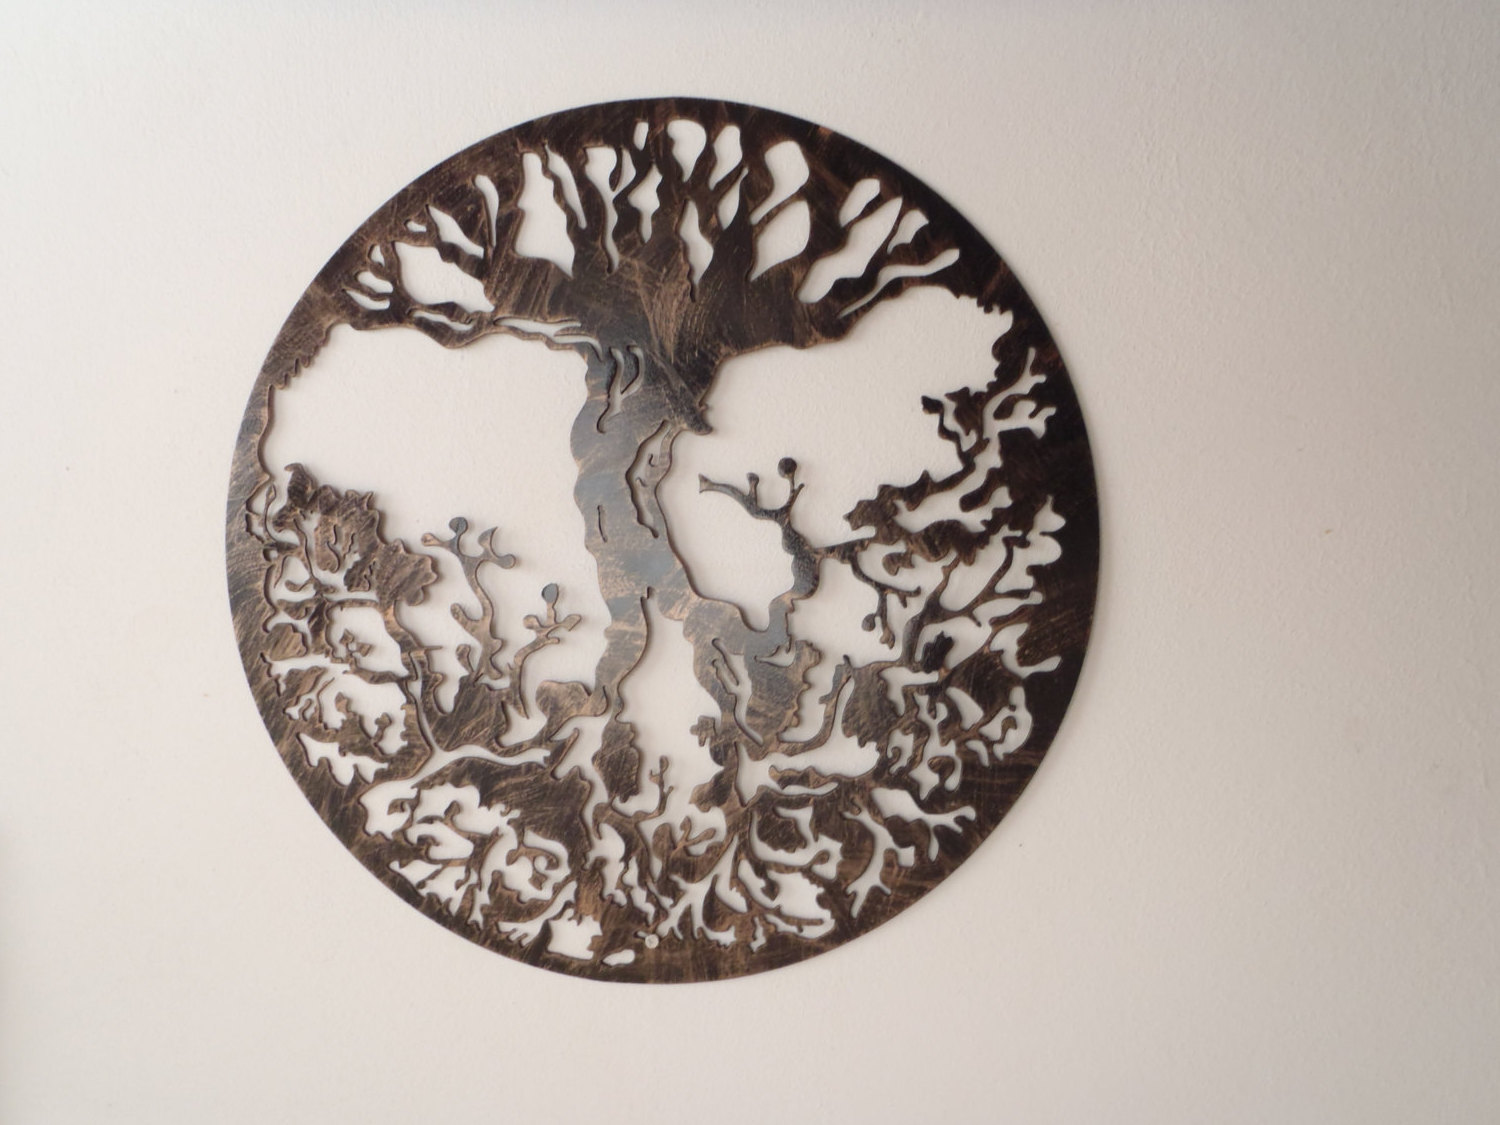 Tree Of Life Antique Look Wall Art (Image 8 of 10)